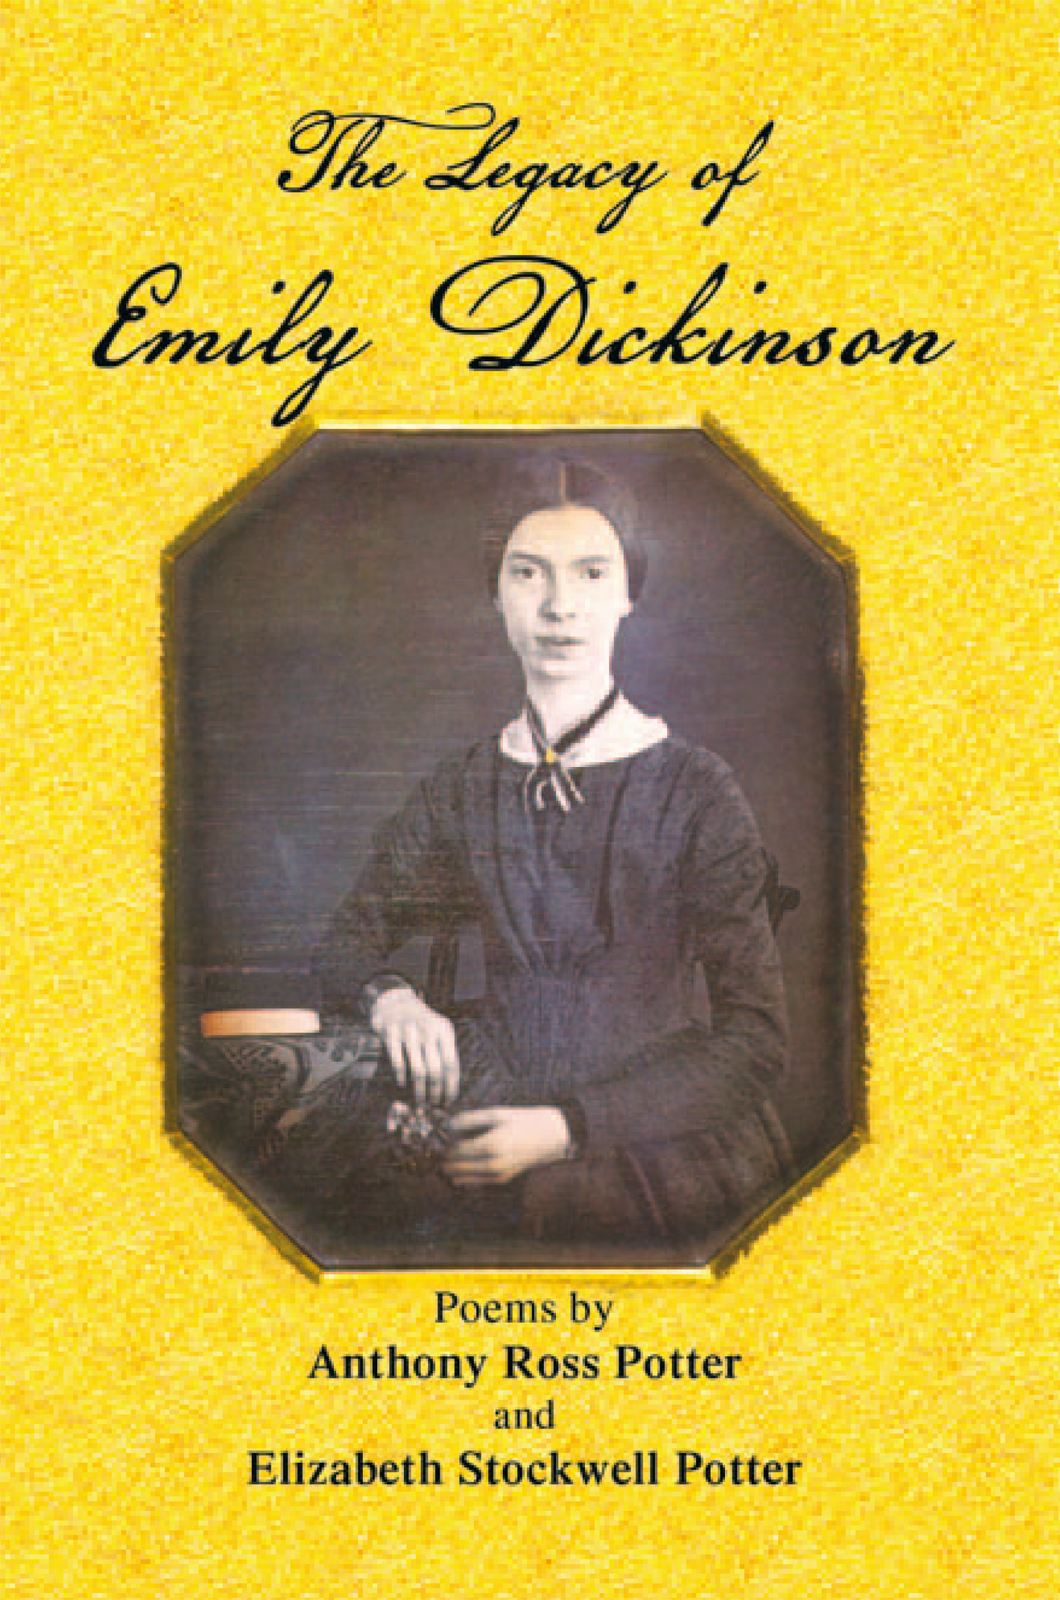 The Legacy of Emily Dickinson